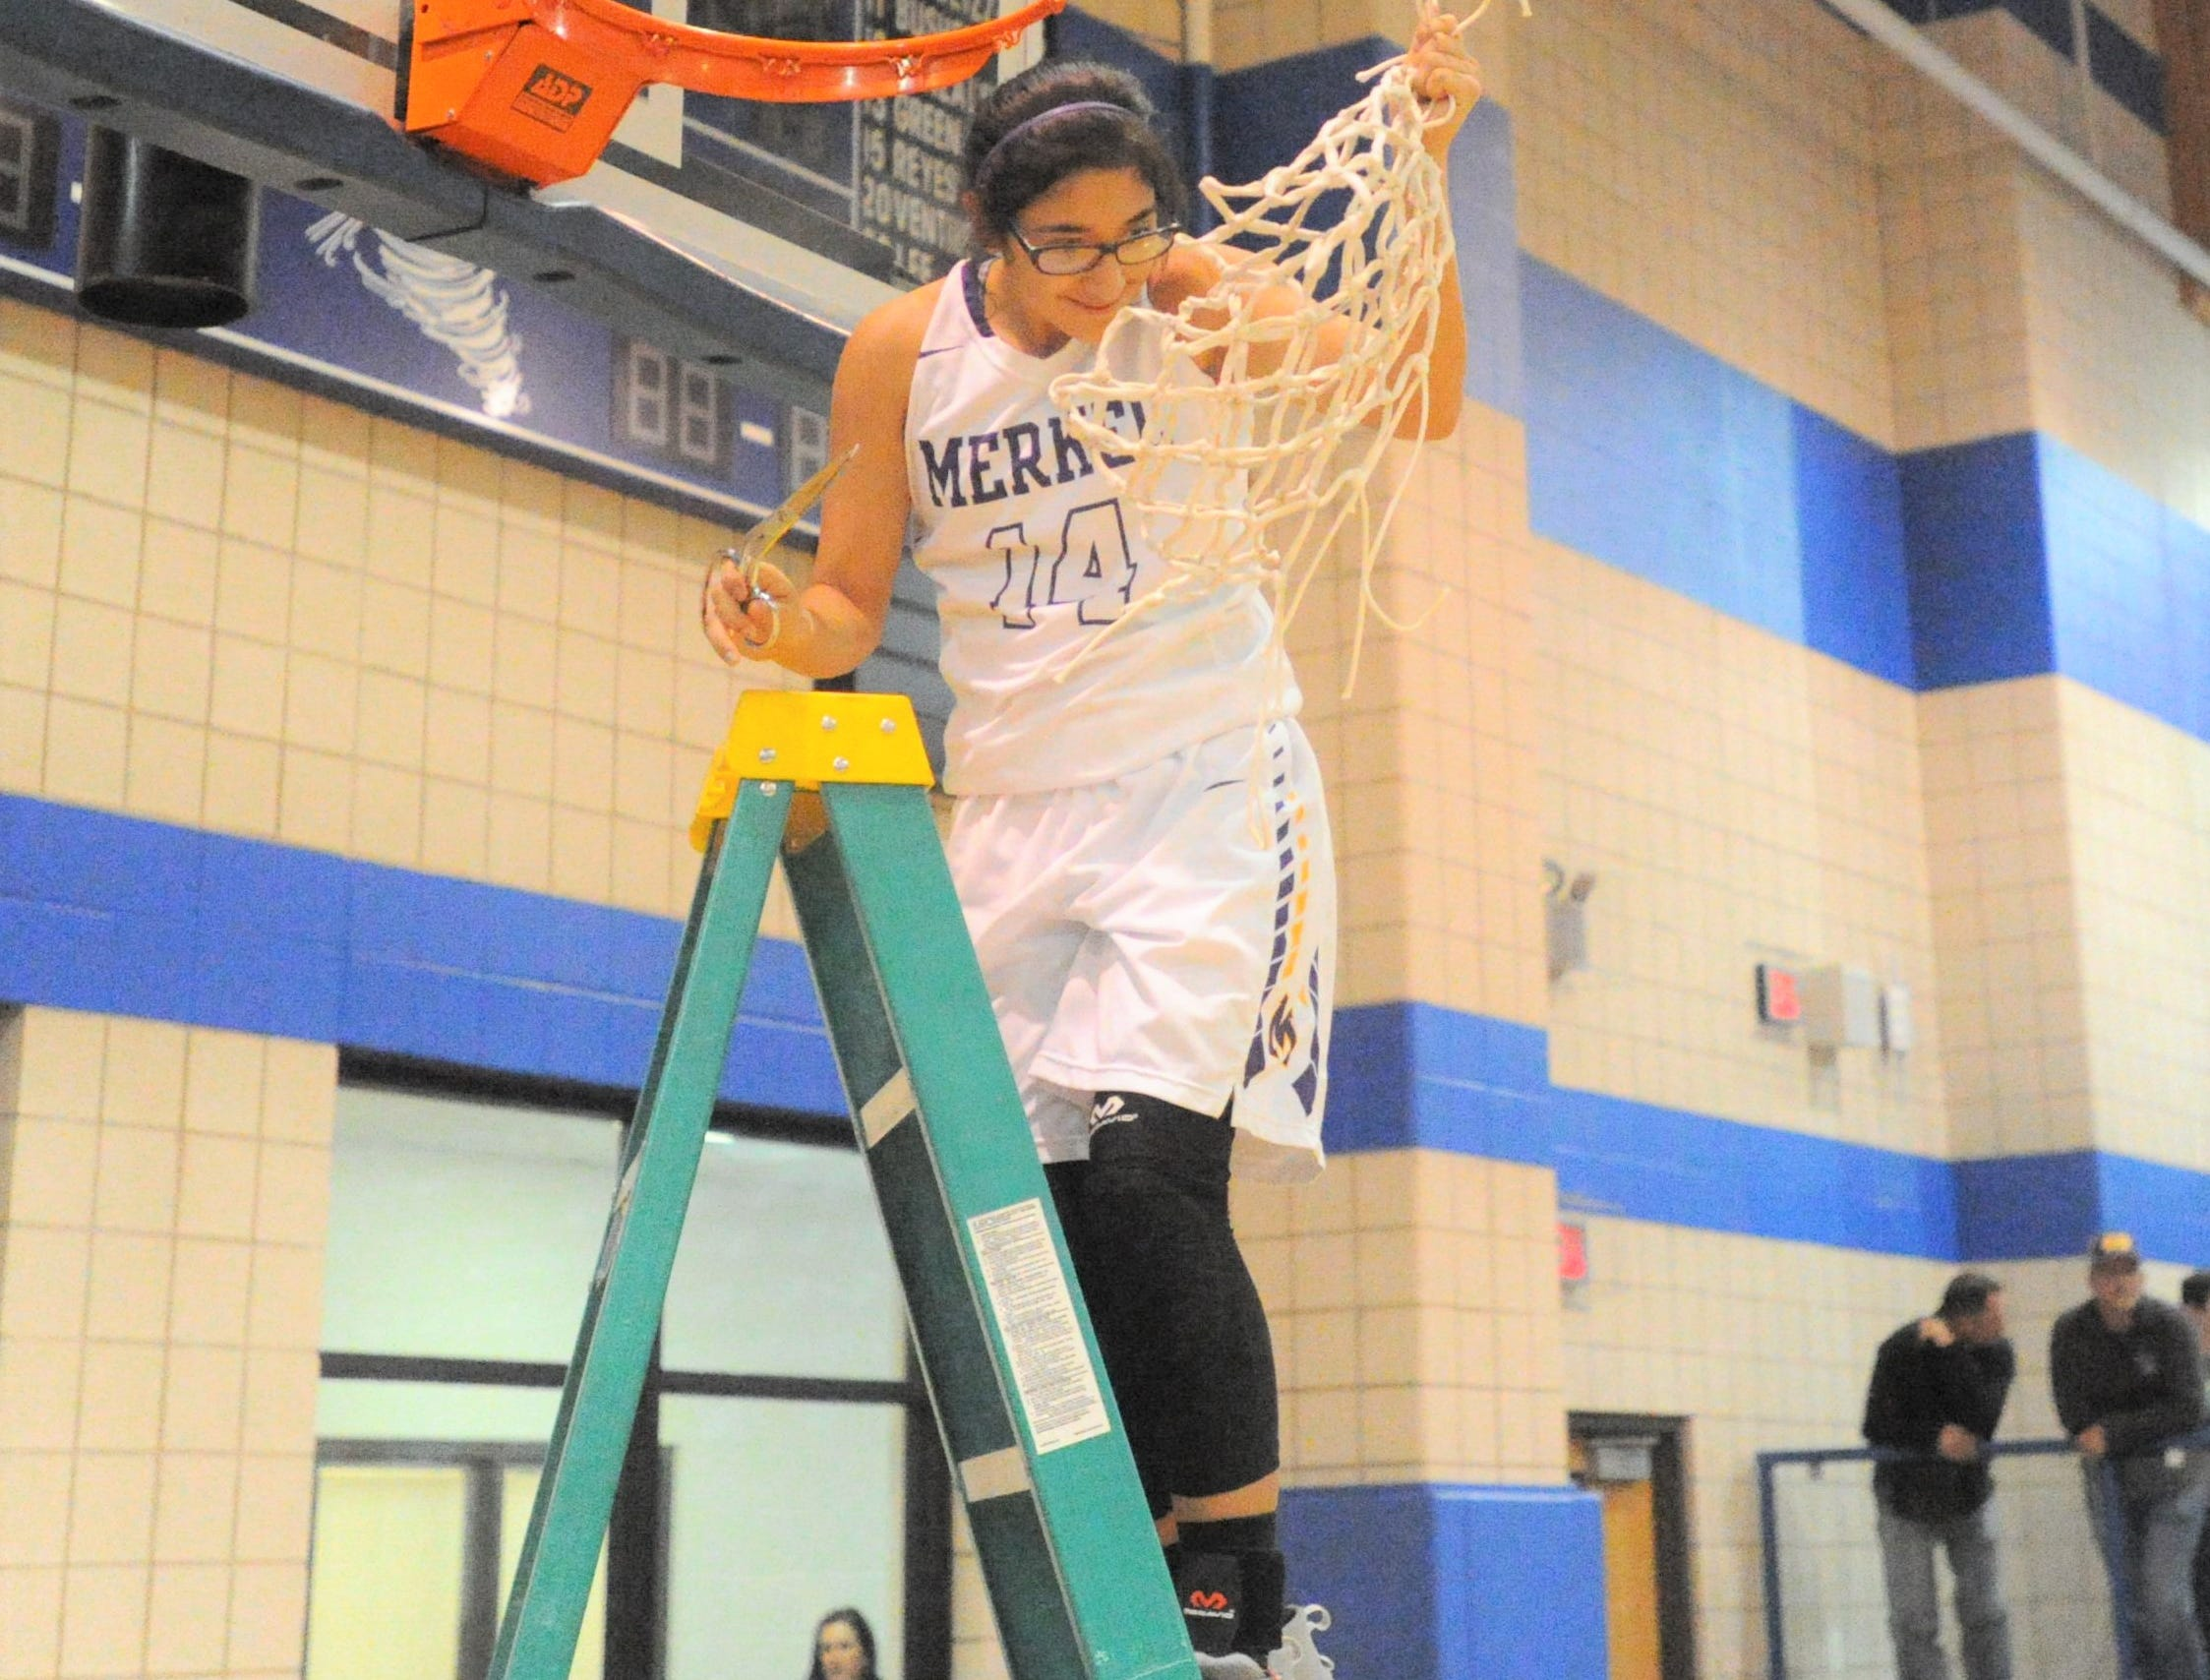 Merkel senior Mireya Salazar holds up the net at Winters High School on Monday, Feb. 11, 2019, following the Lady Badgers' 49-33 win over Coleman.